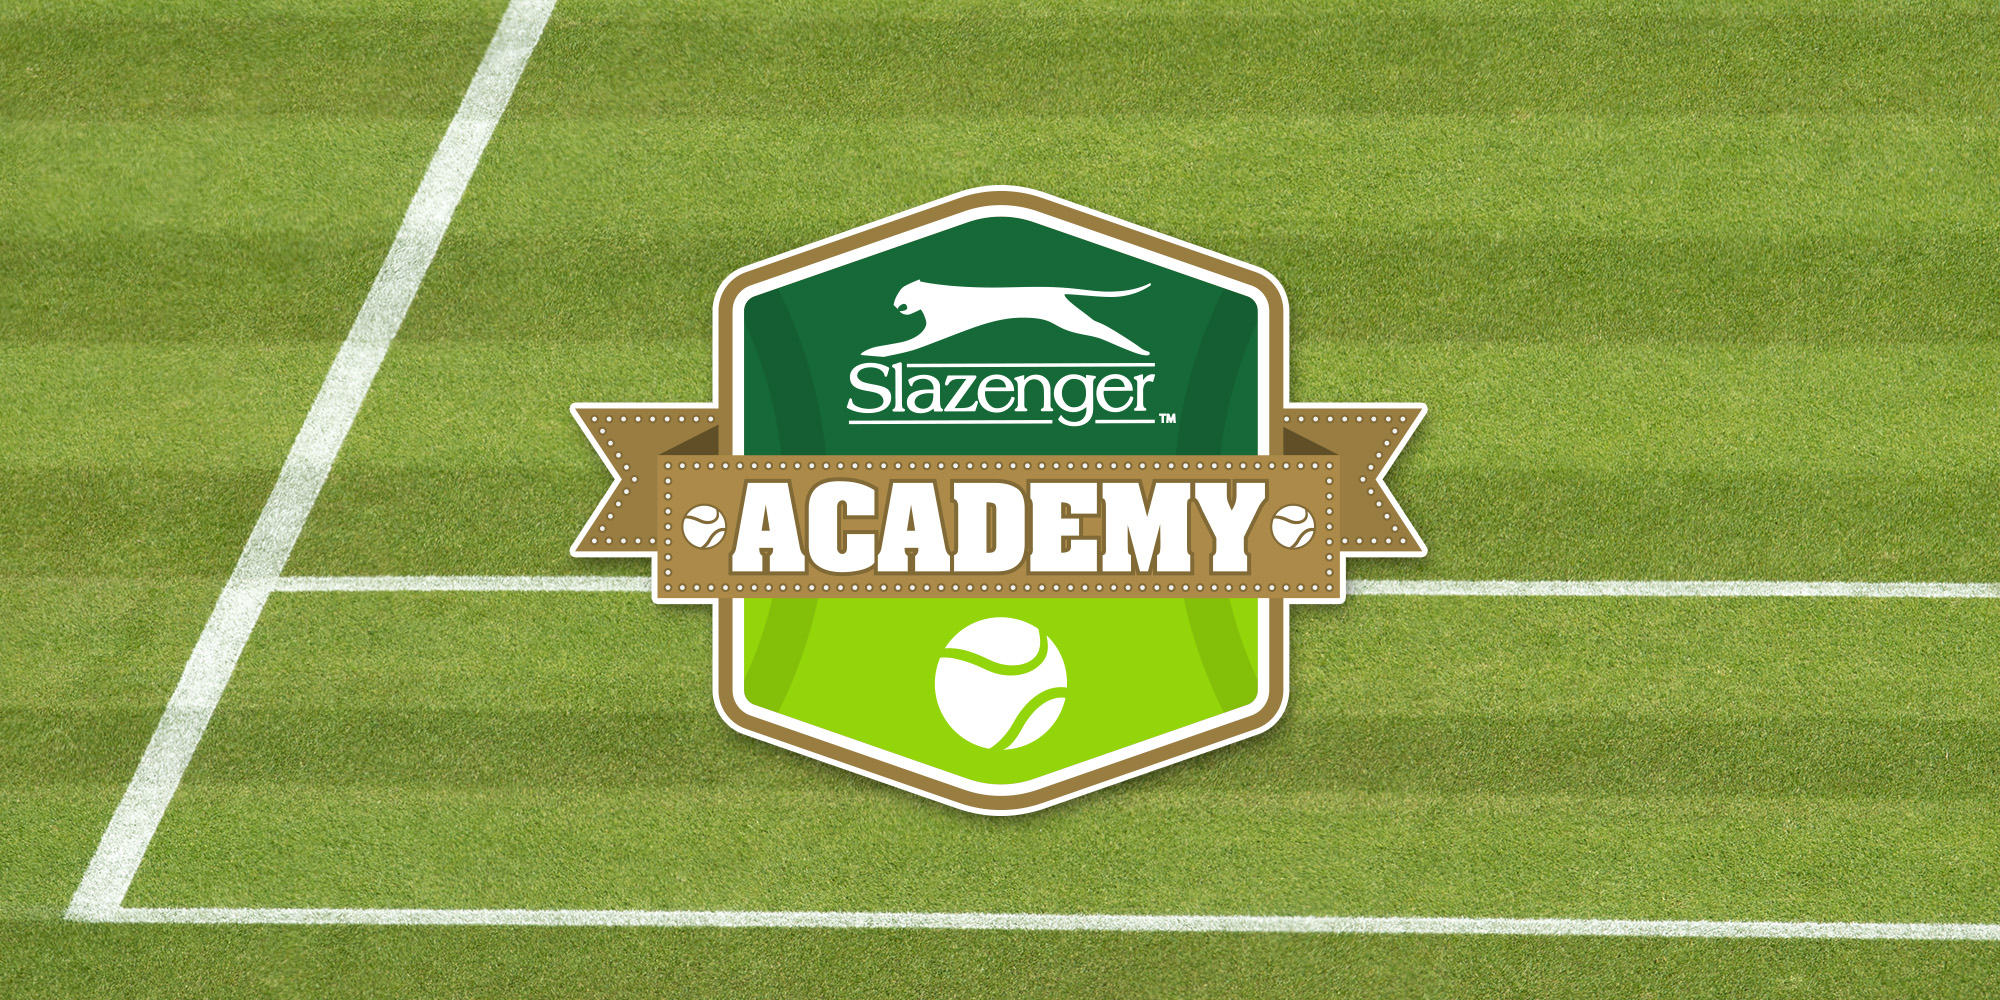 The new Slazenger Academy